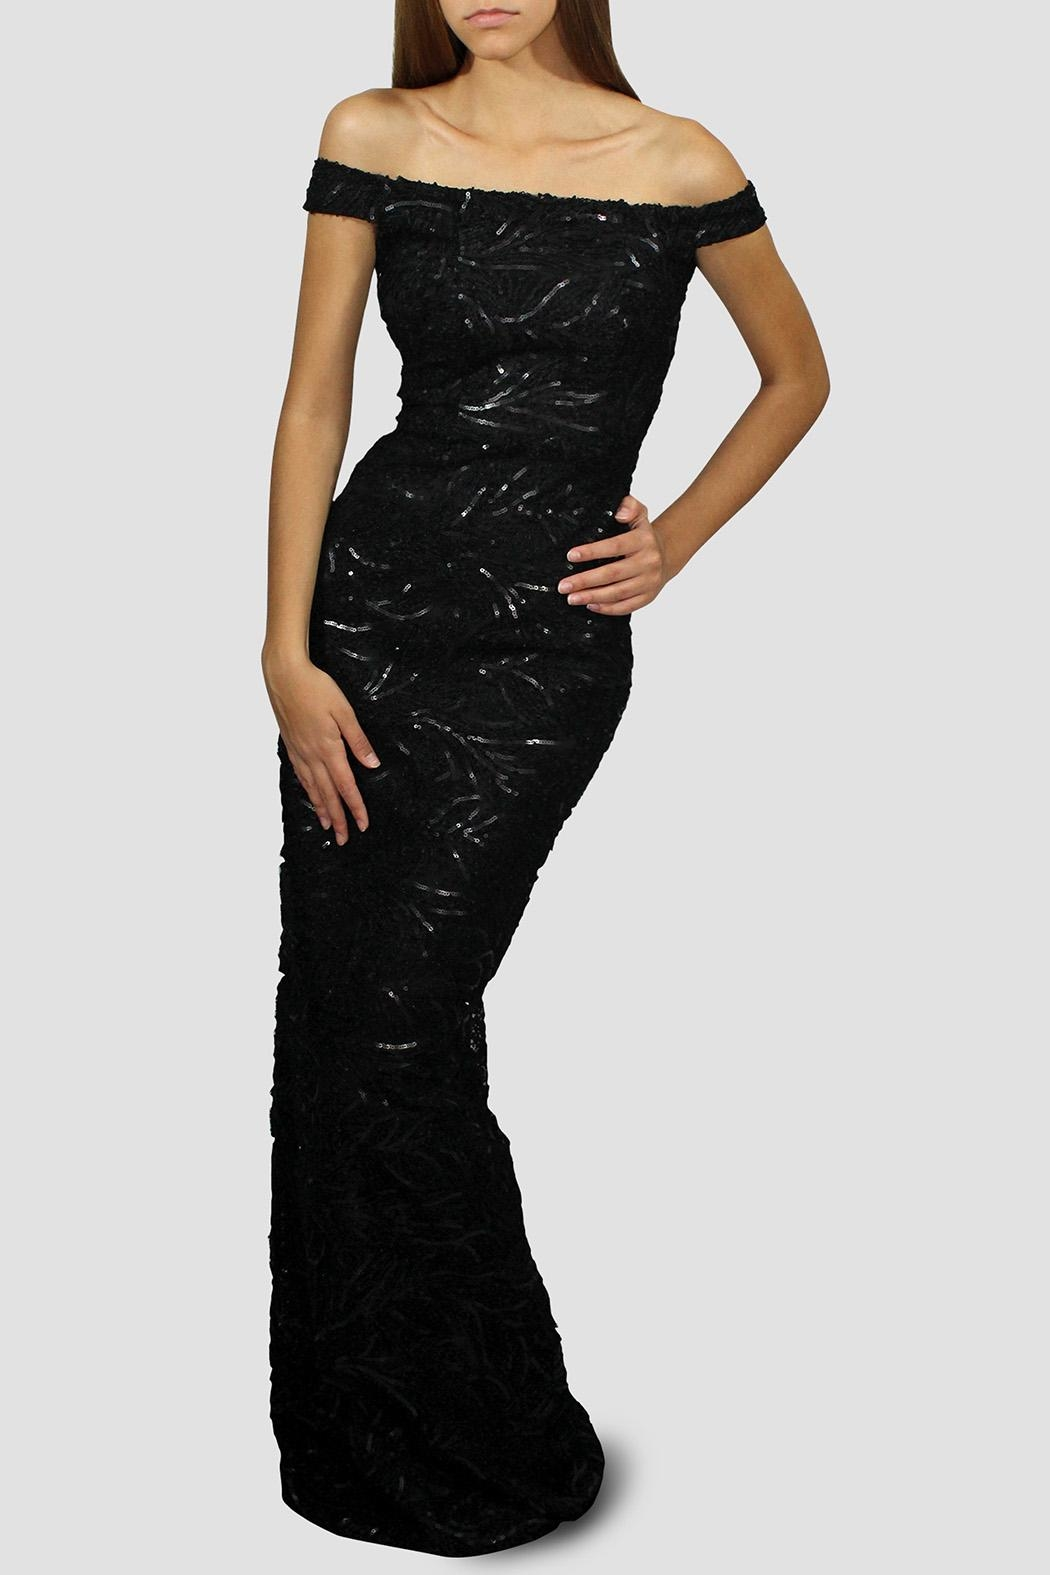 SoZu Sequin Sheath Dress - Front Cropped Image